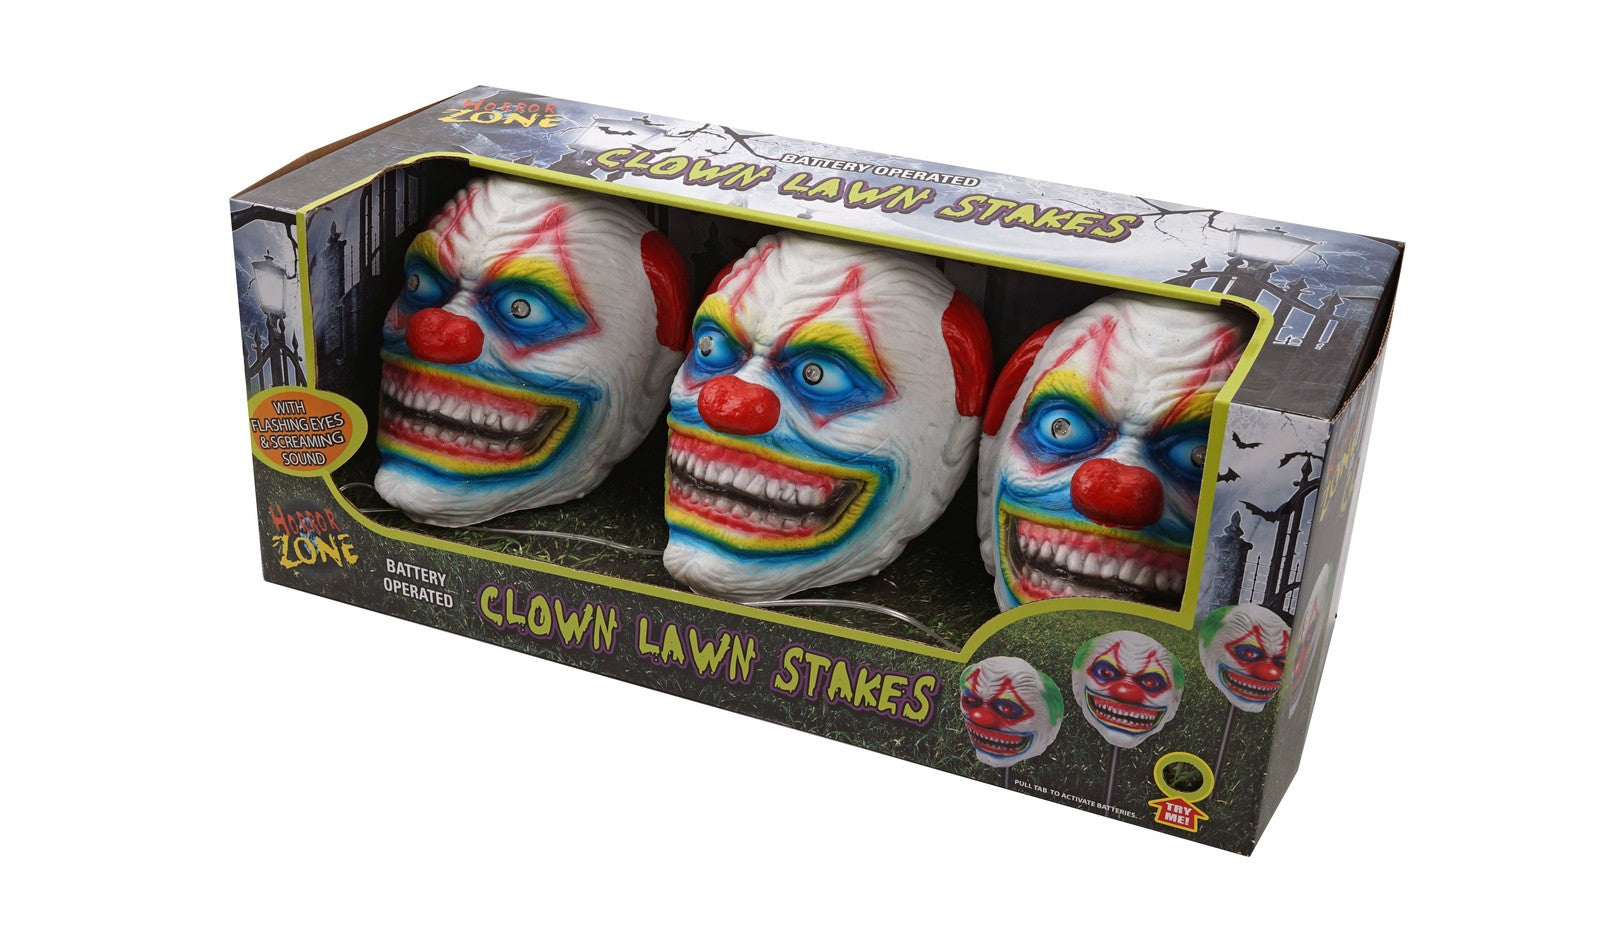 Creepy Clown Yard Stakes - Buy Online Only